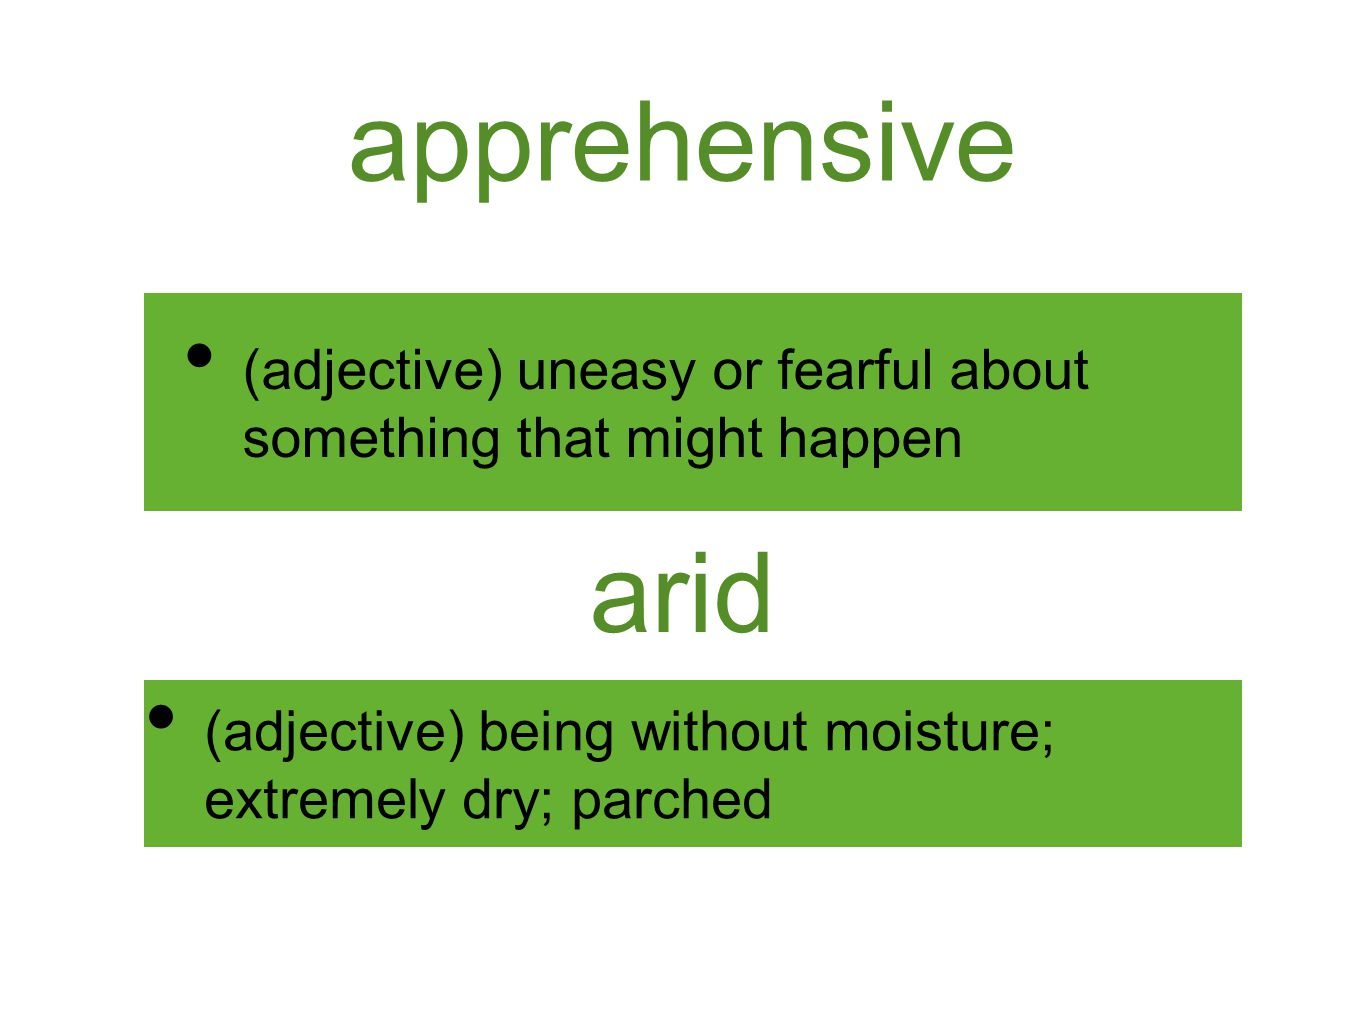 apprehensive (adjective) uneasy or fearful about something that might happen arid (adjective) being without moisture; extremely dry; parched